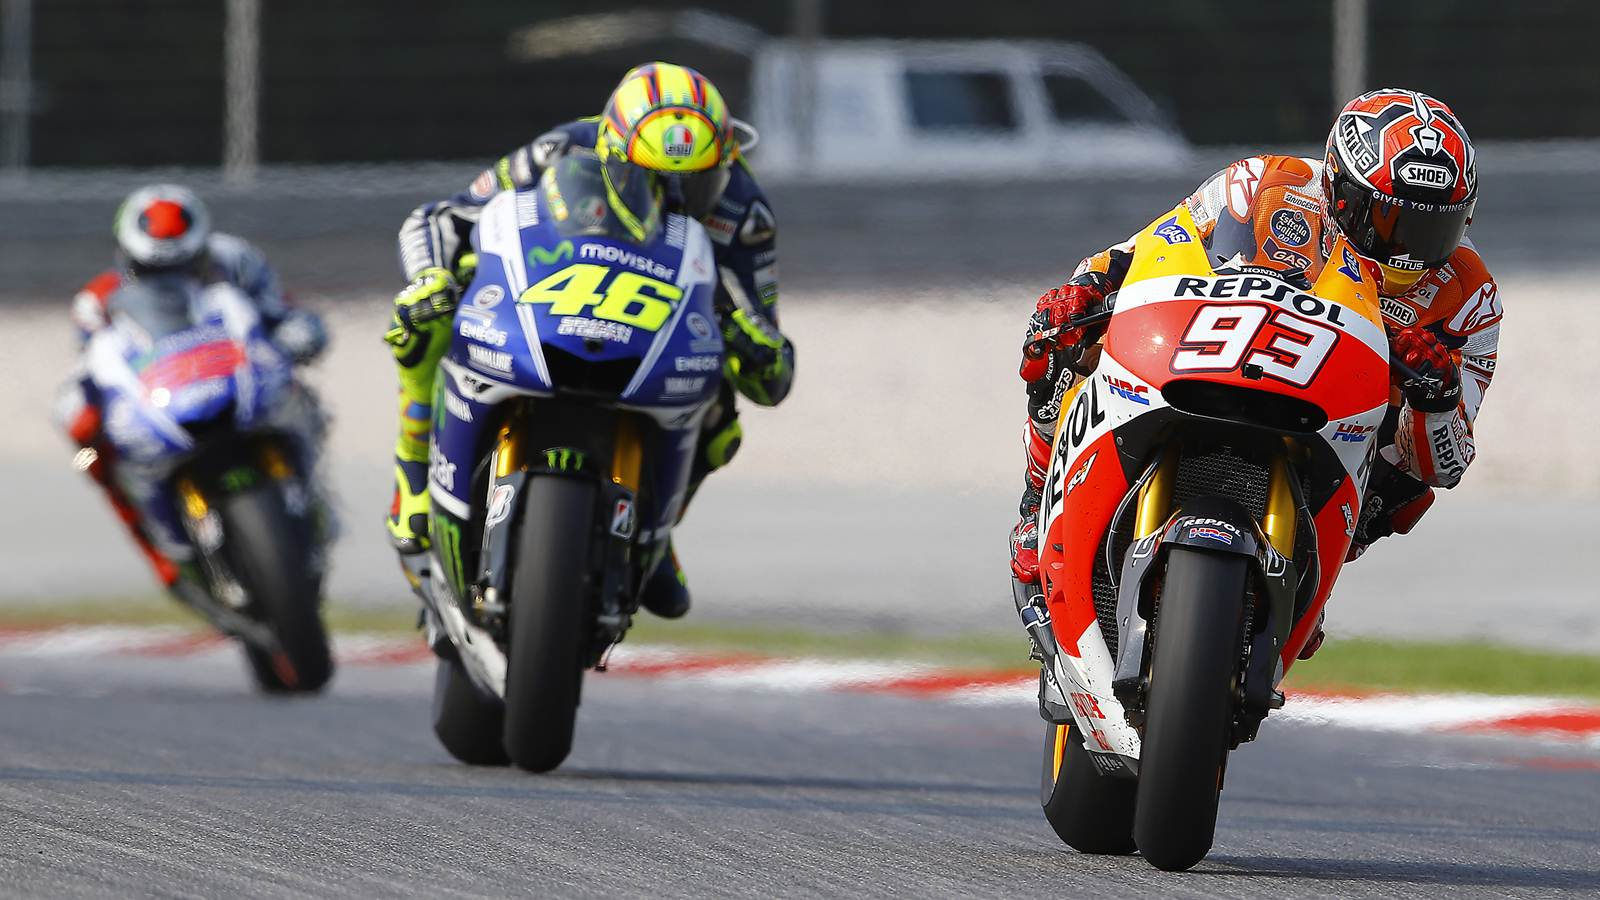 Marc Marquez wins at MotoGP Sepang